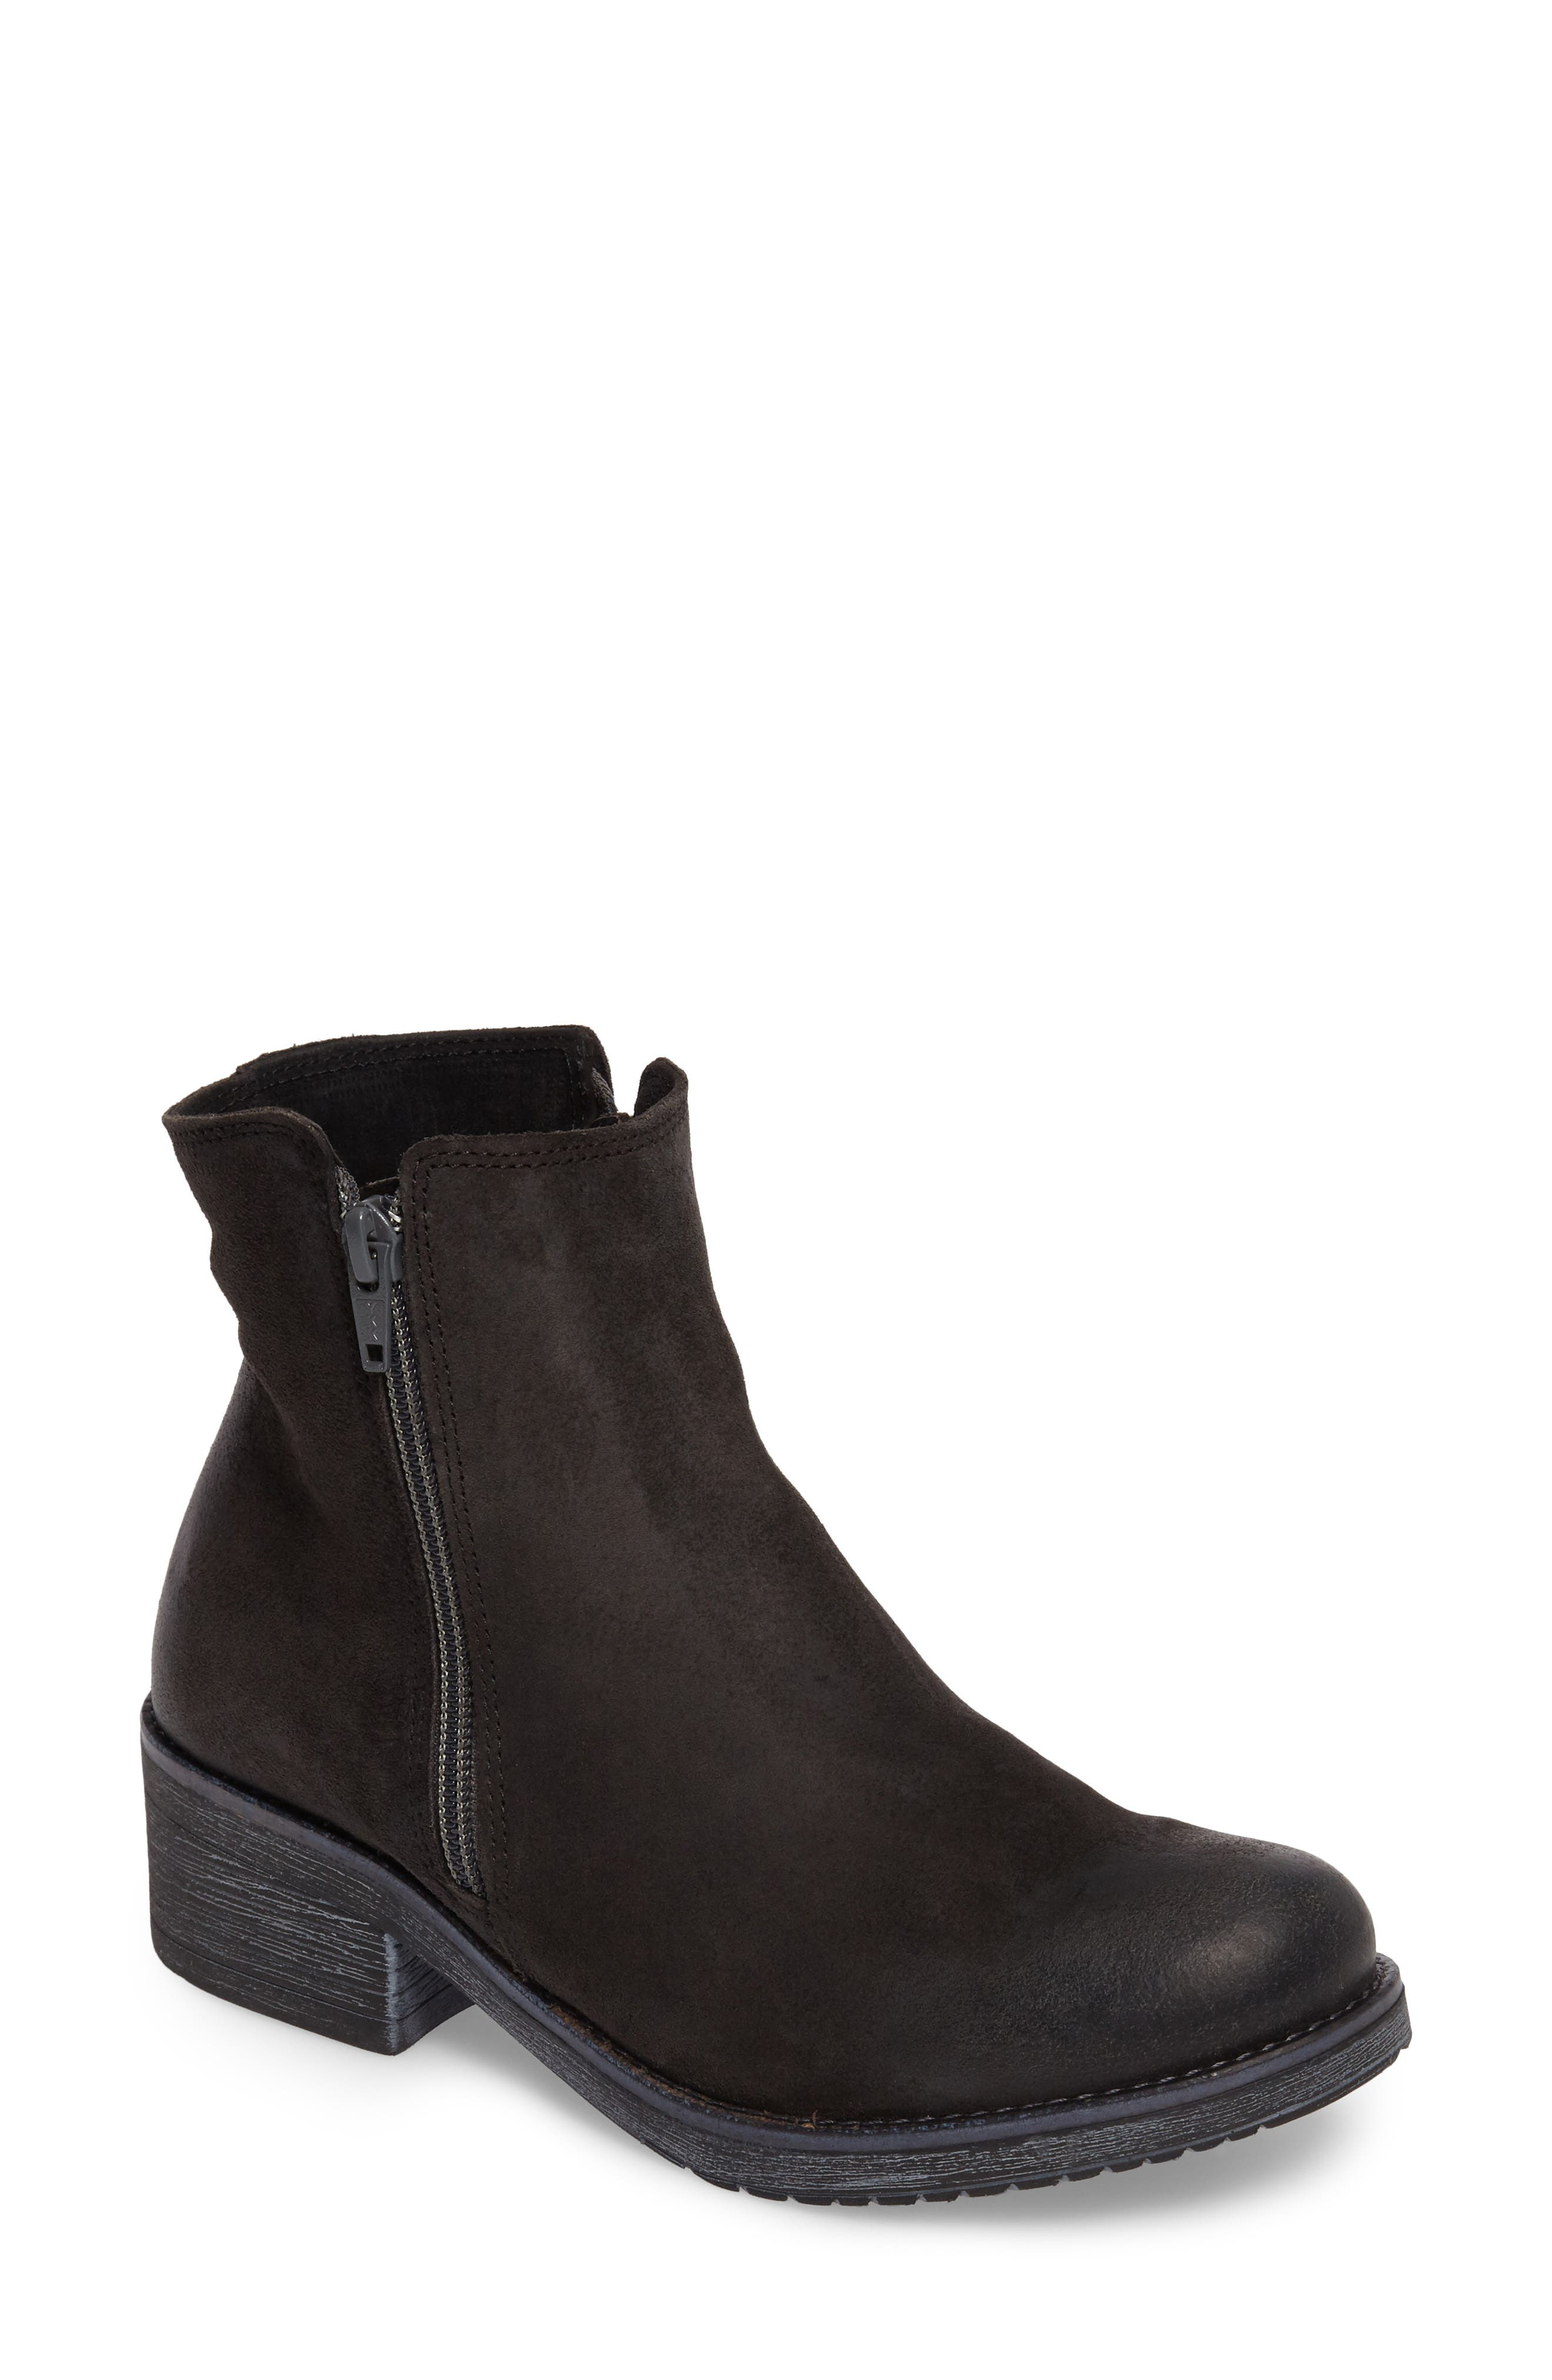 Wander Boot,                             Main thumbnail 1, color,                             OILY MIDNIGHT SUEDE